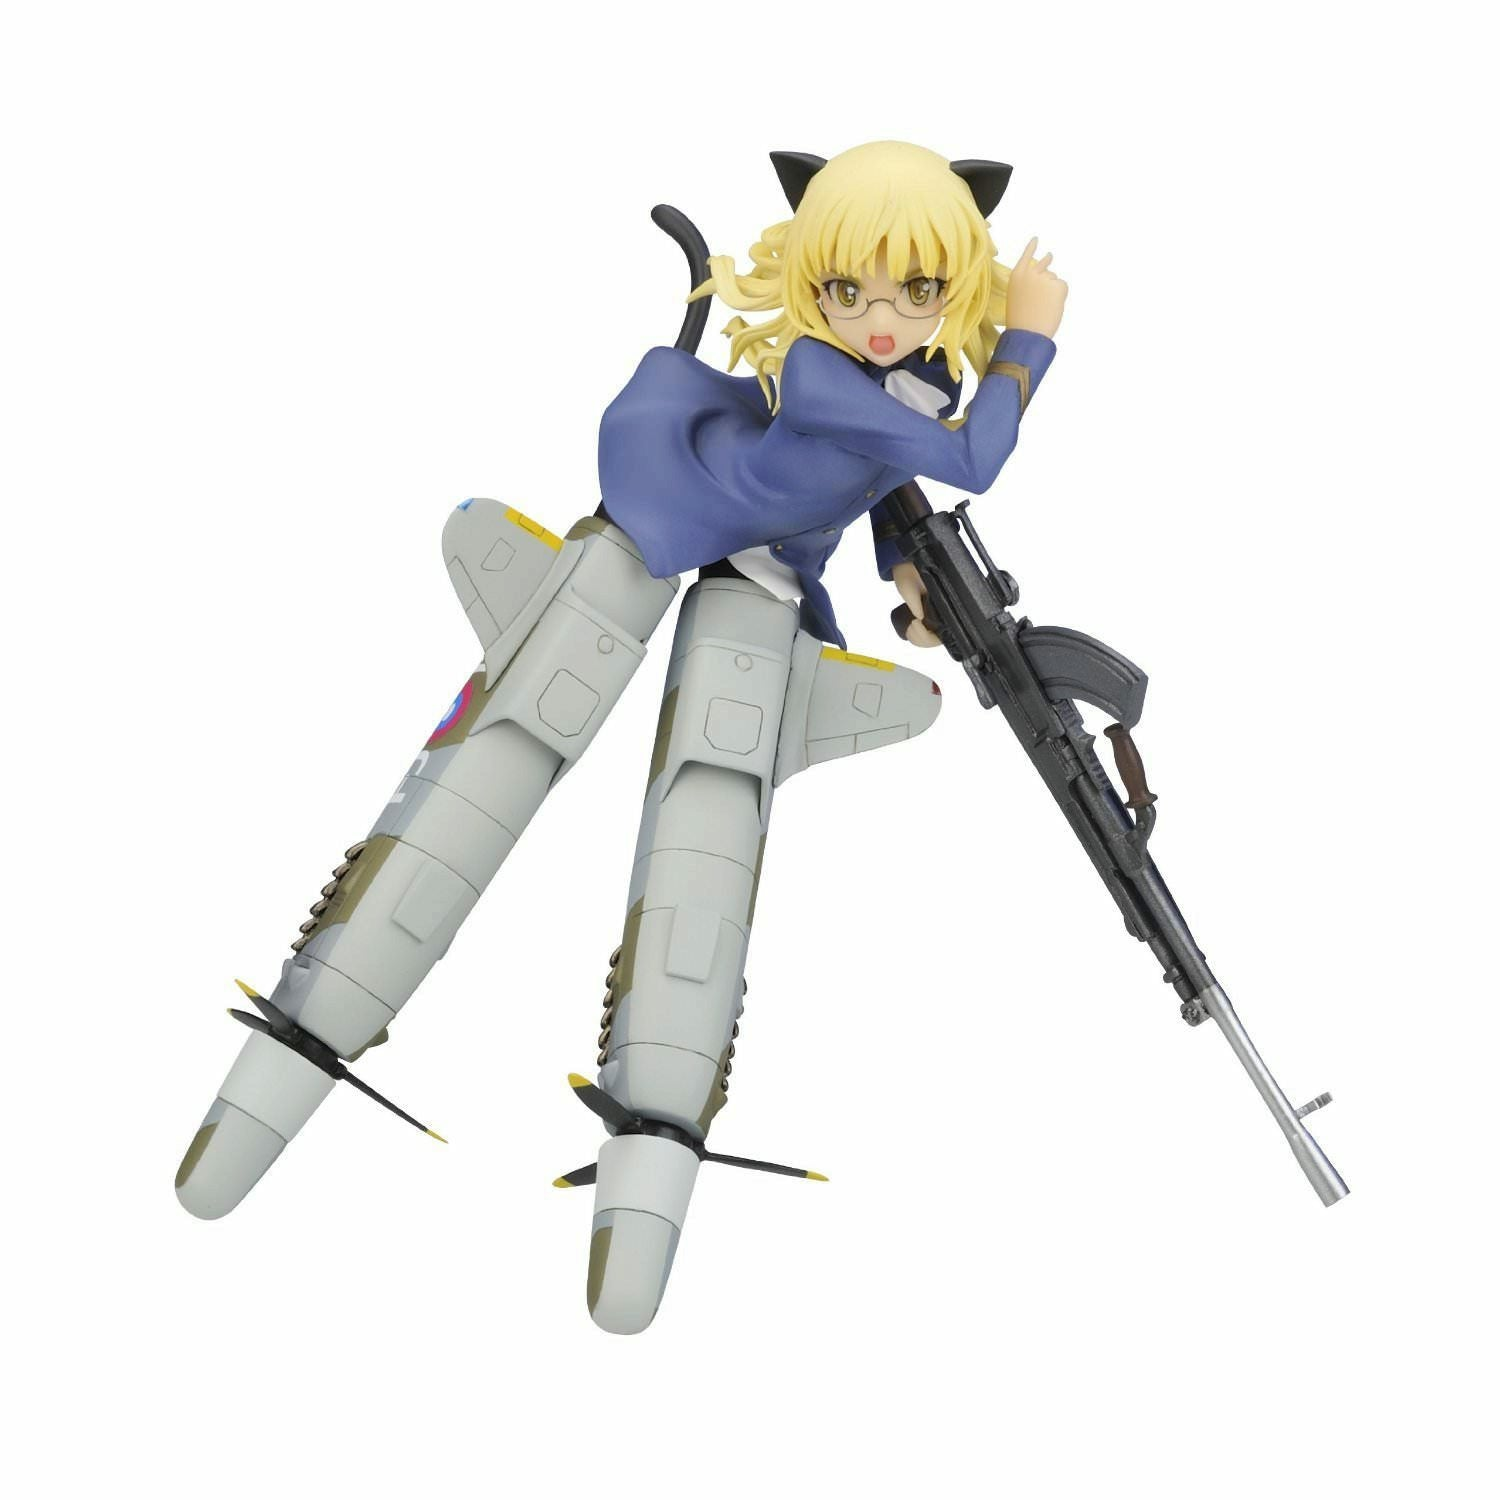 Strike Witches Perrine Clostermann 1/8 Scale PVC Figure